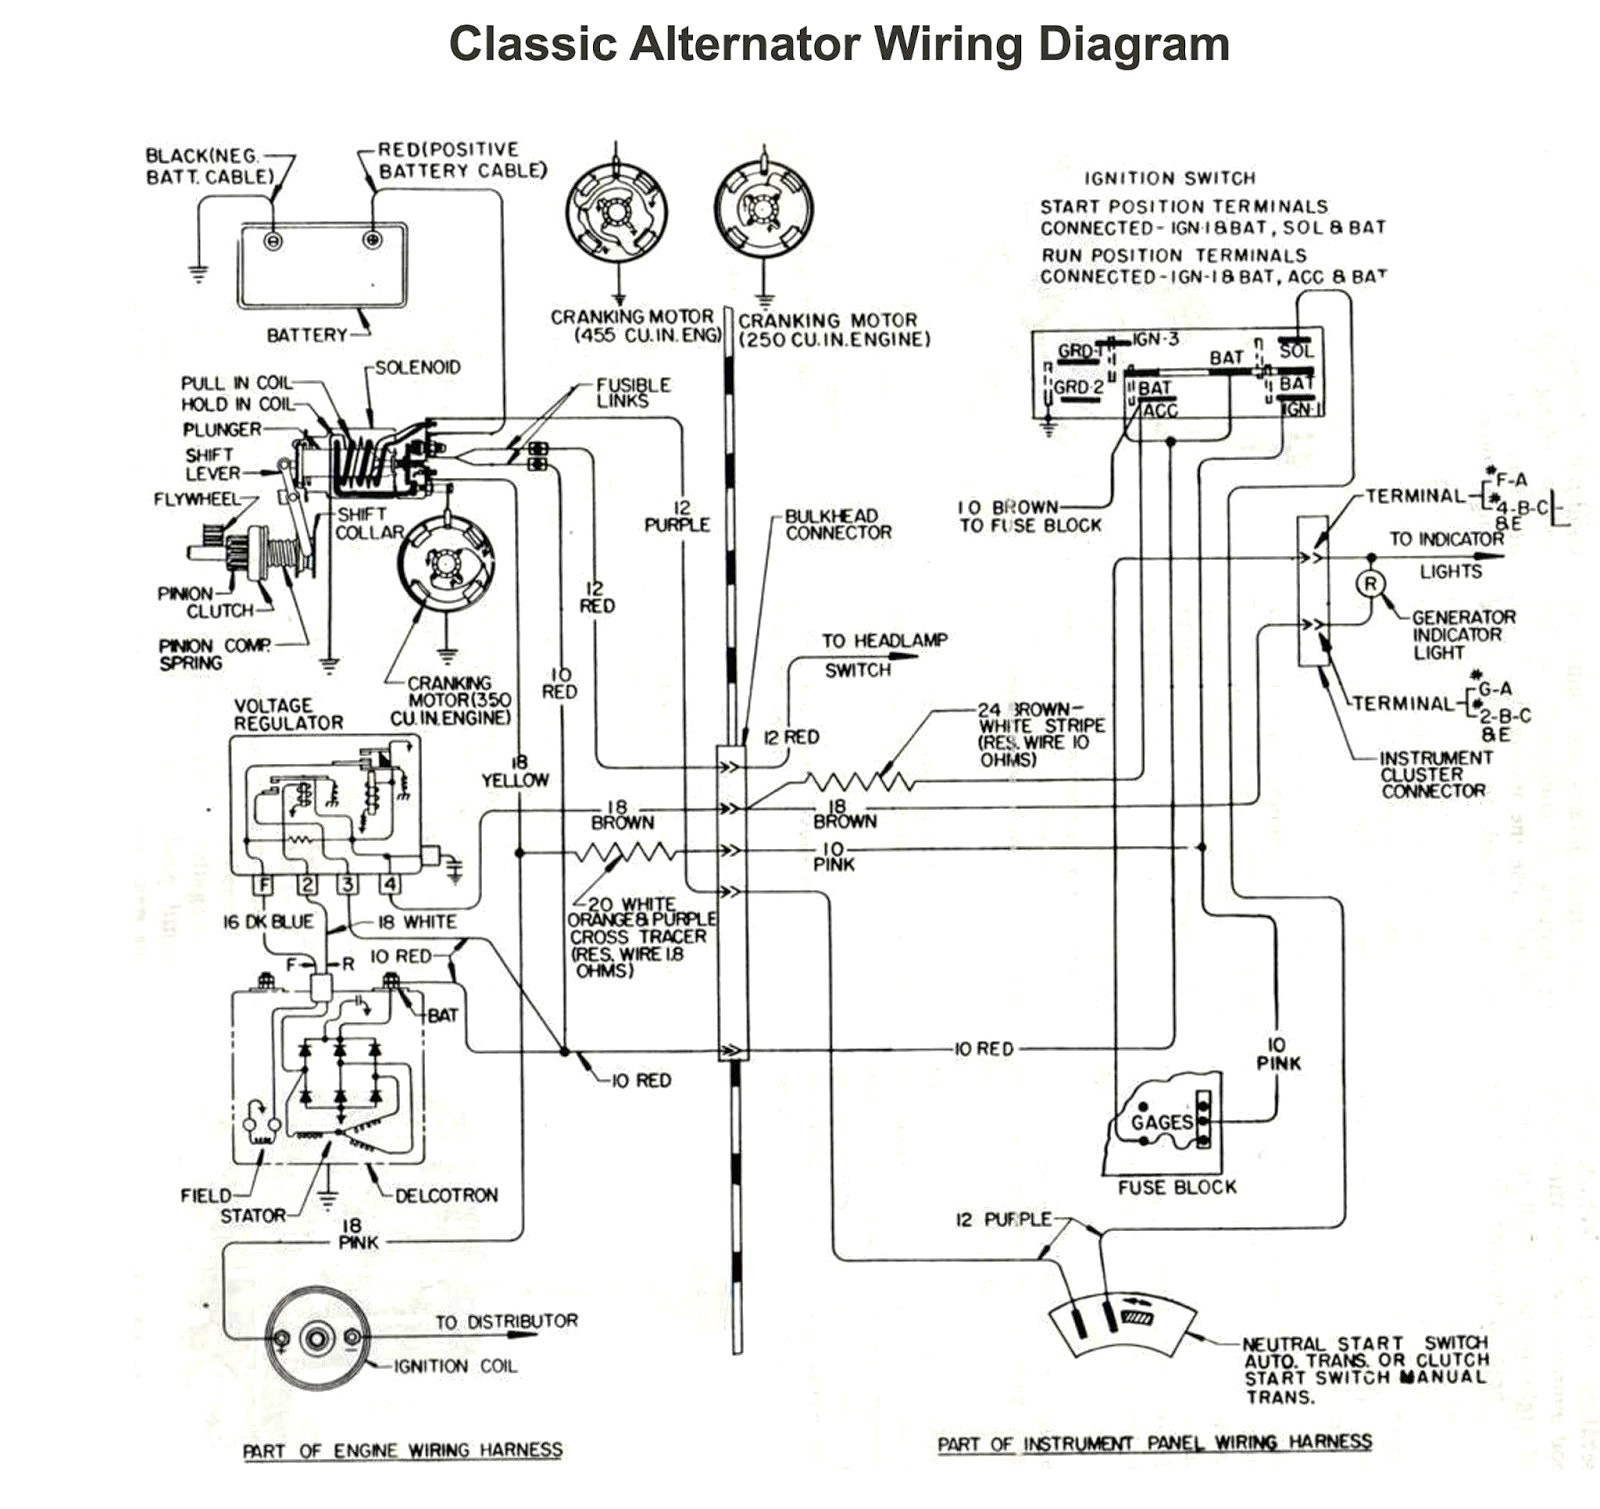 Wheel Scooter Wiring Diagram V on wiring diagram 5a, wiring diagram 96v, wiring diagram 12v, wiring diagram battery, wiring diagram 24v, wiring diagram 120v, wiring diagram 240v,